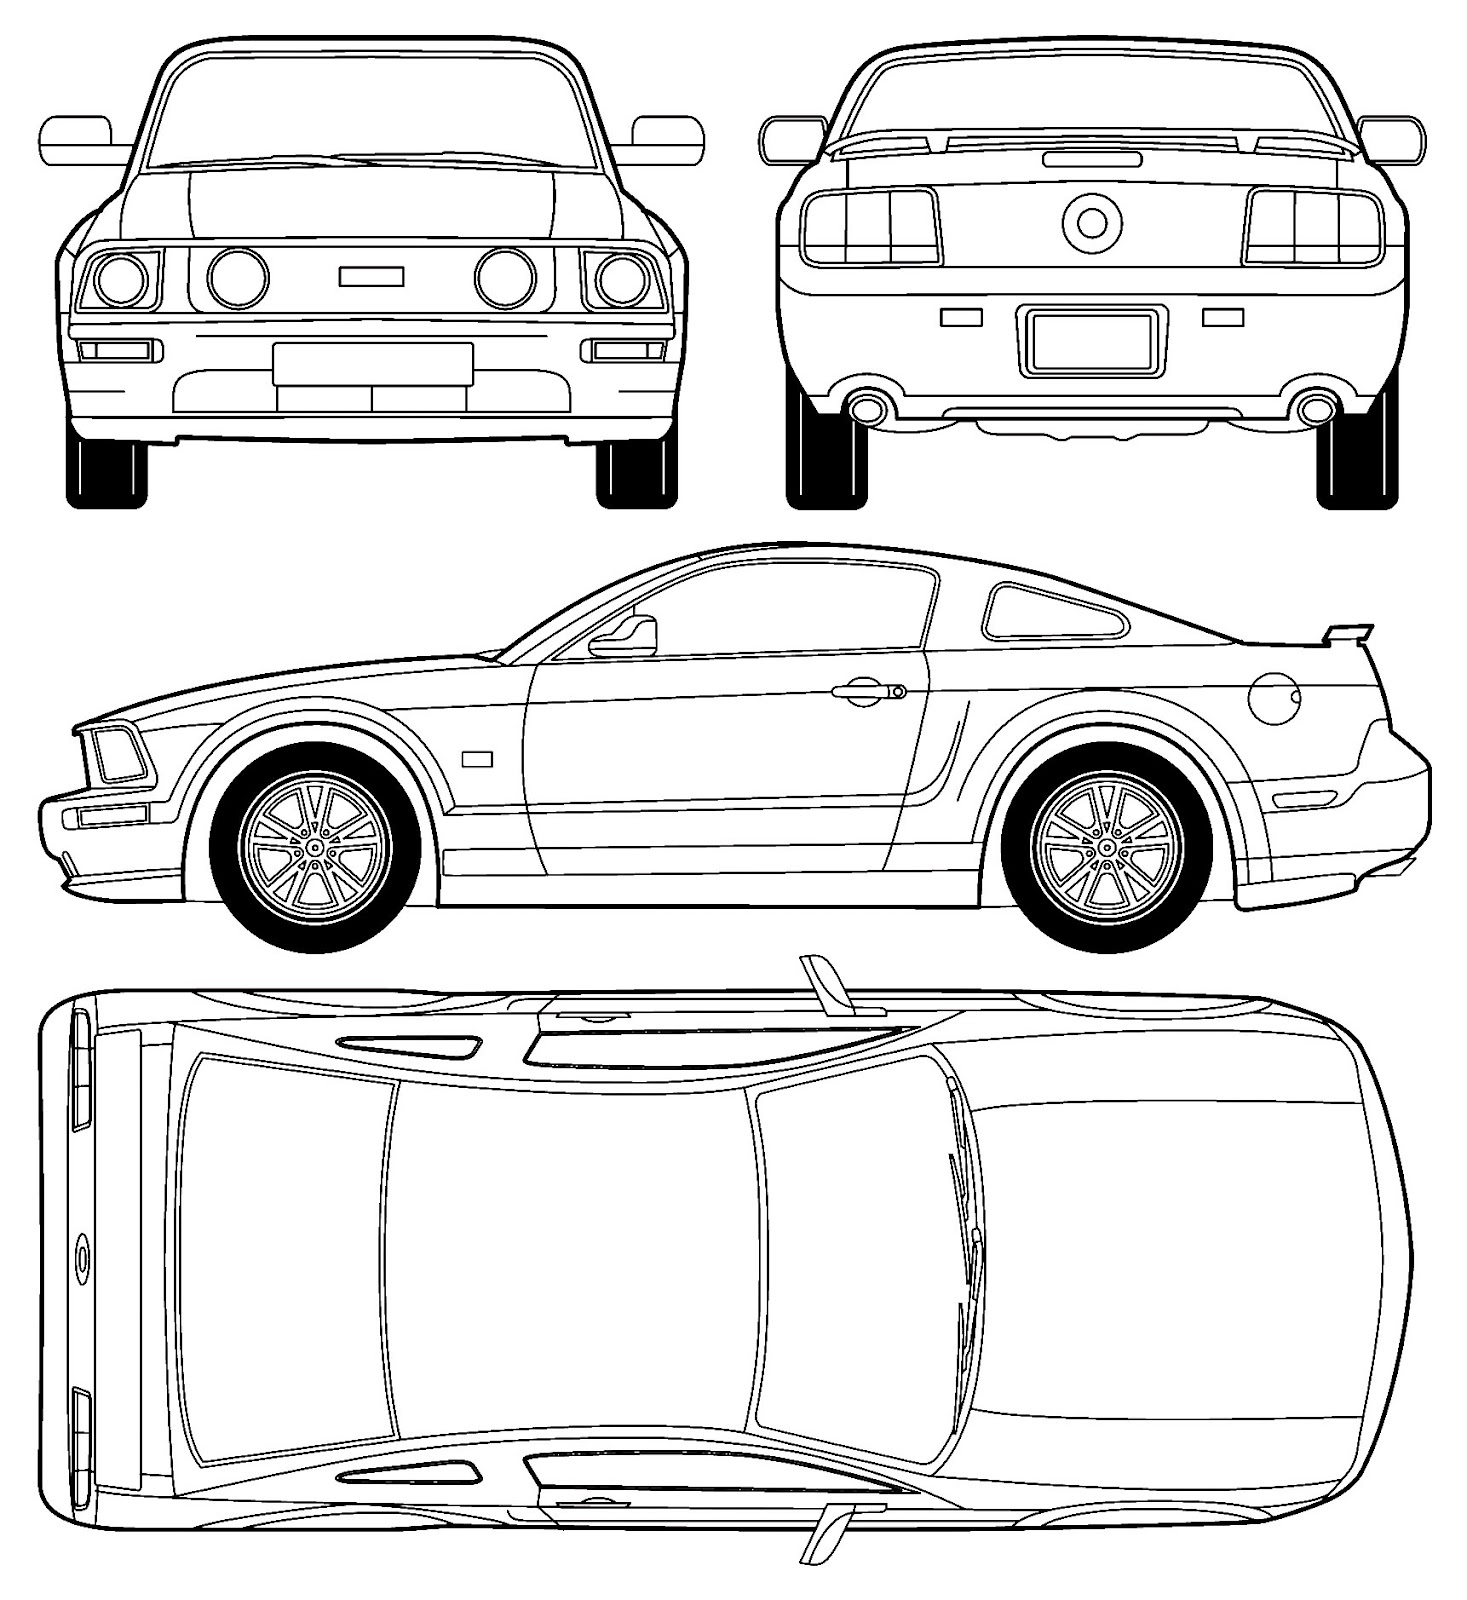 ford mustang gt 2006 blueprint